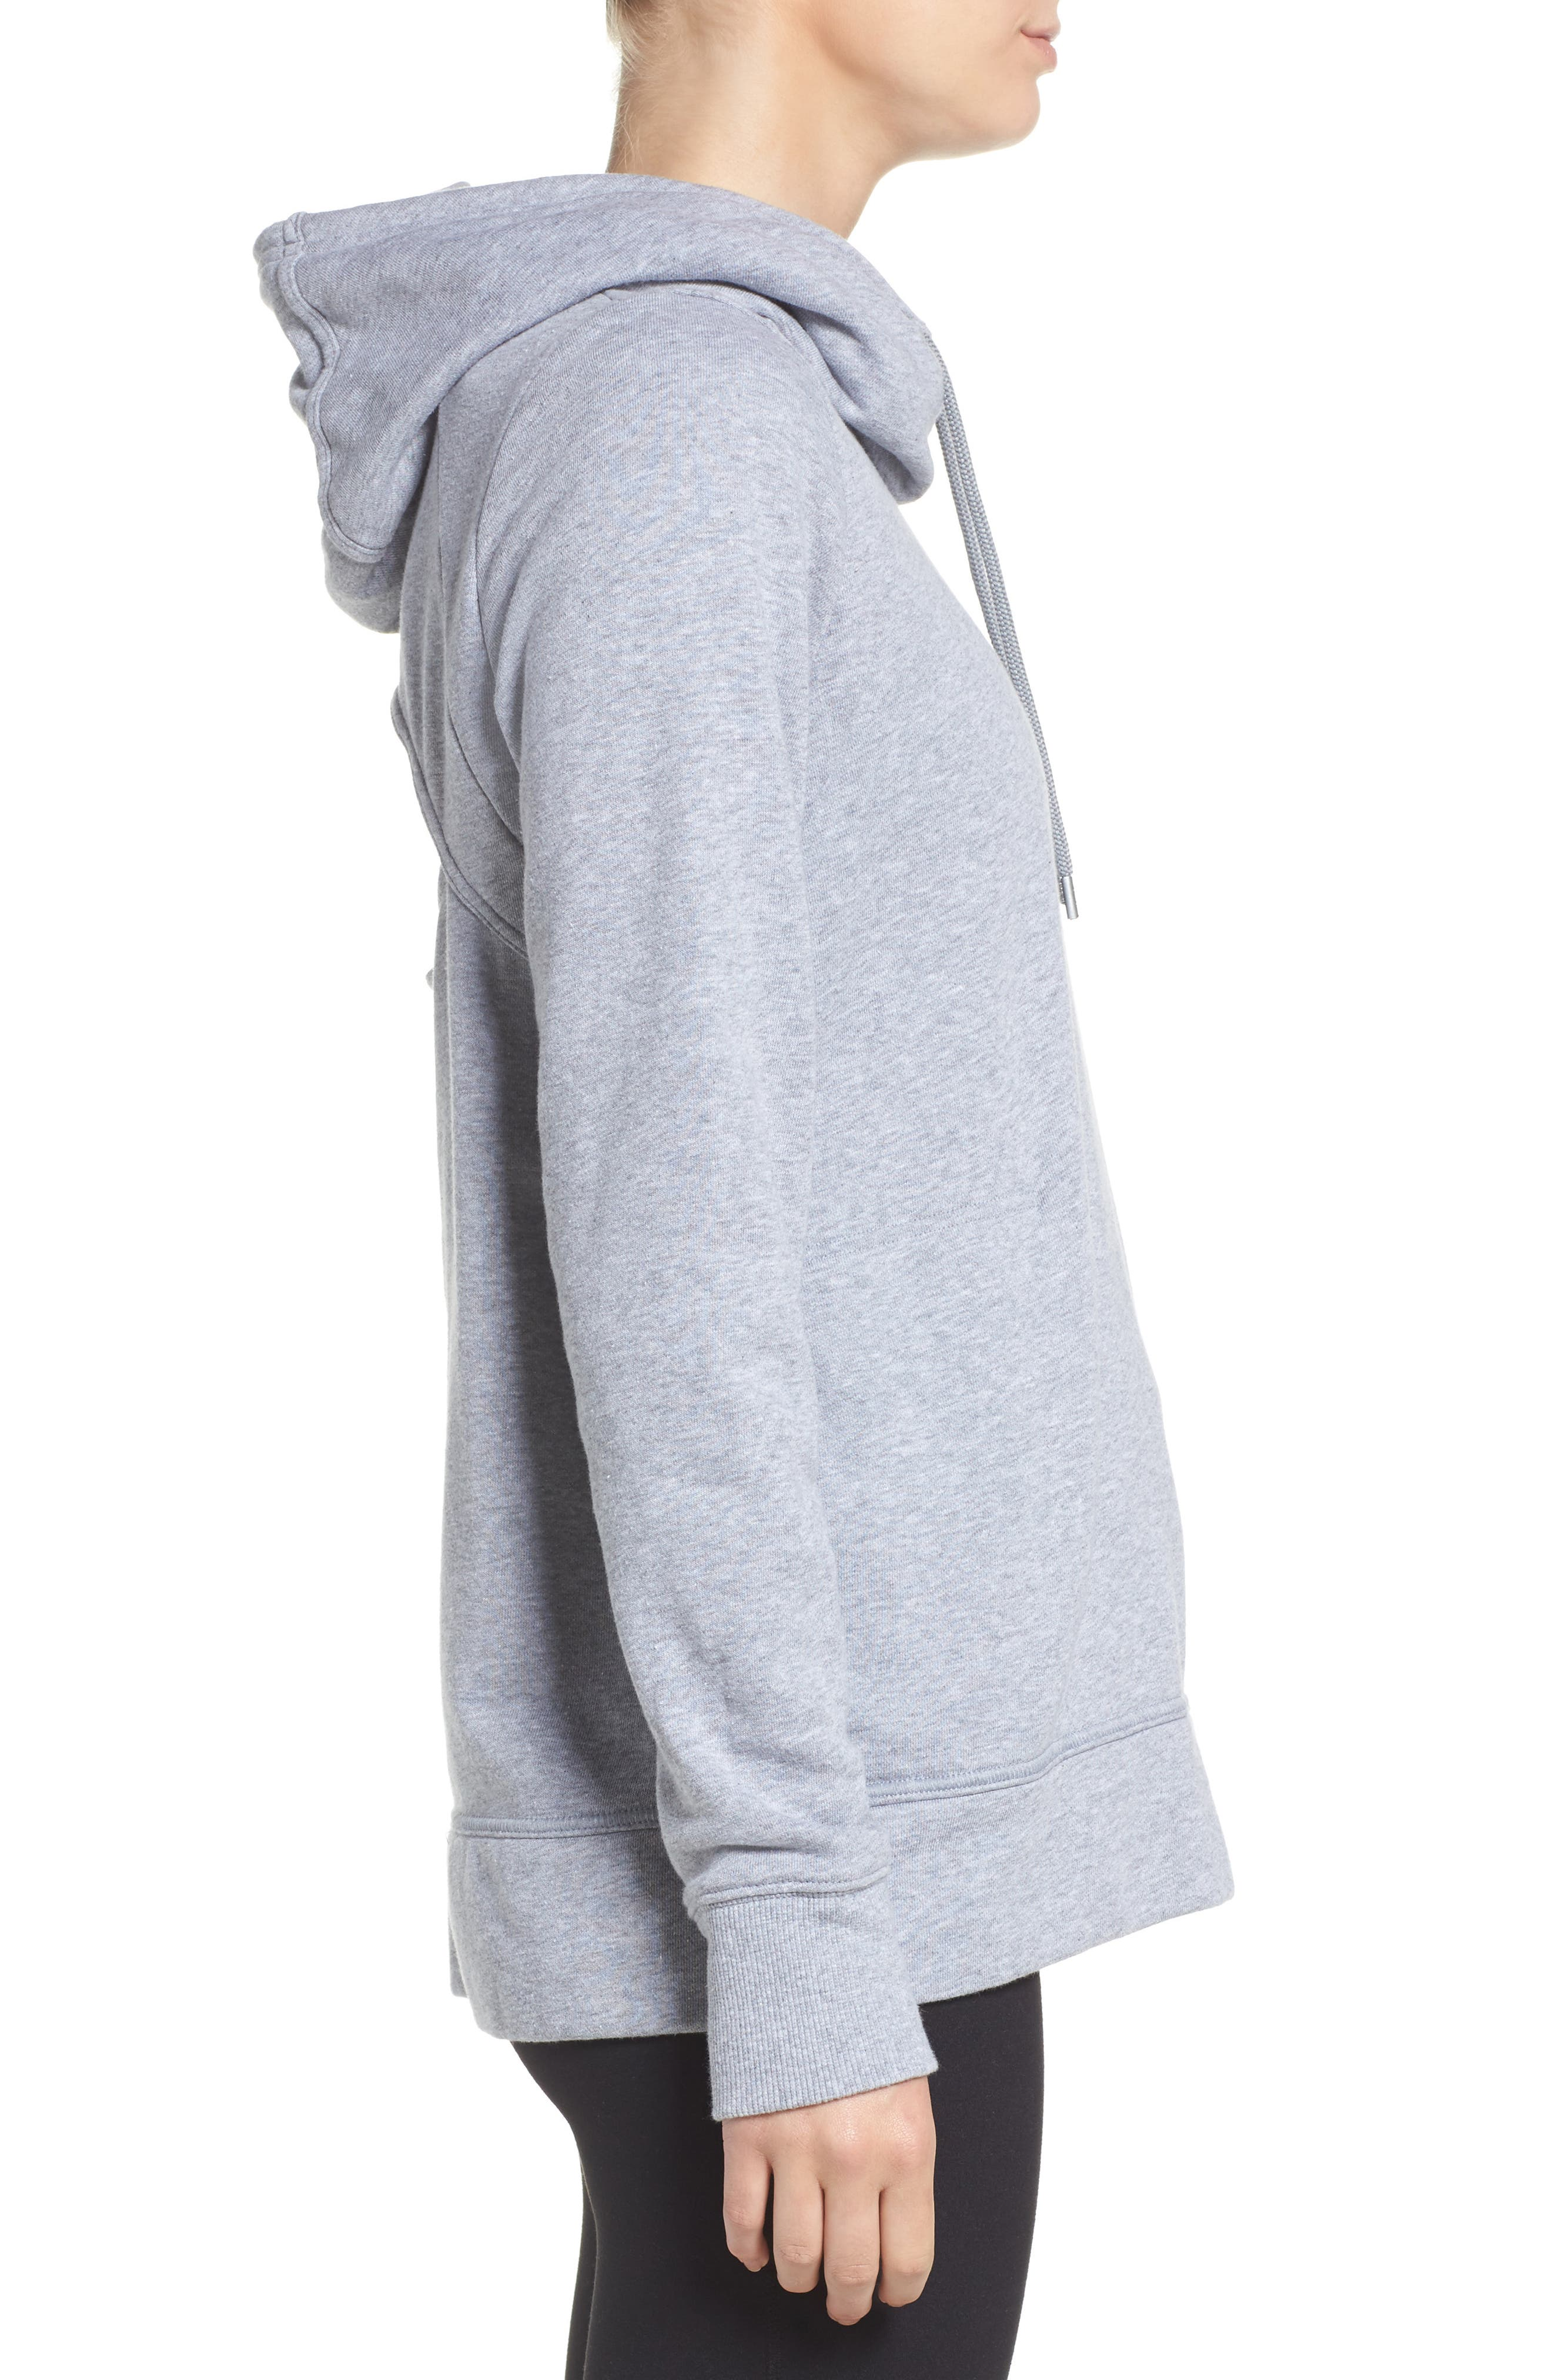 Cutout Back Hoodie,                             Alternate thumbnail 4, color,                             True Gray Heather/ Rhino Grey